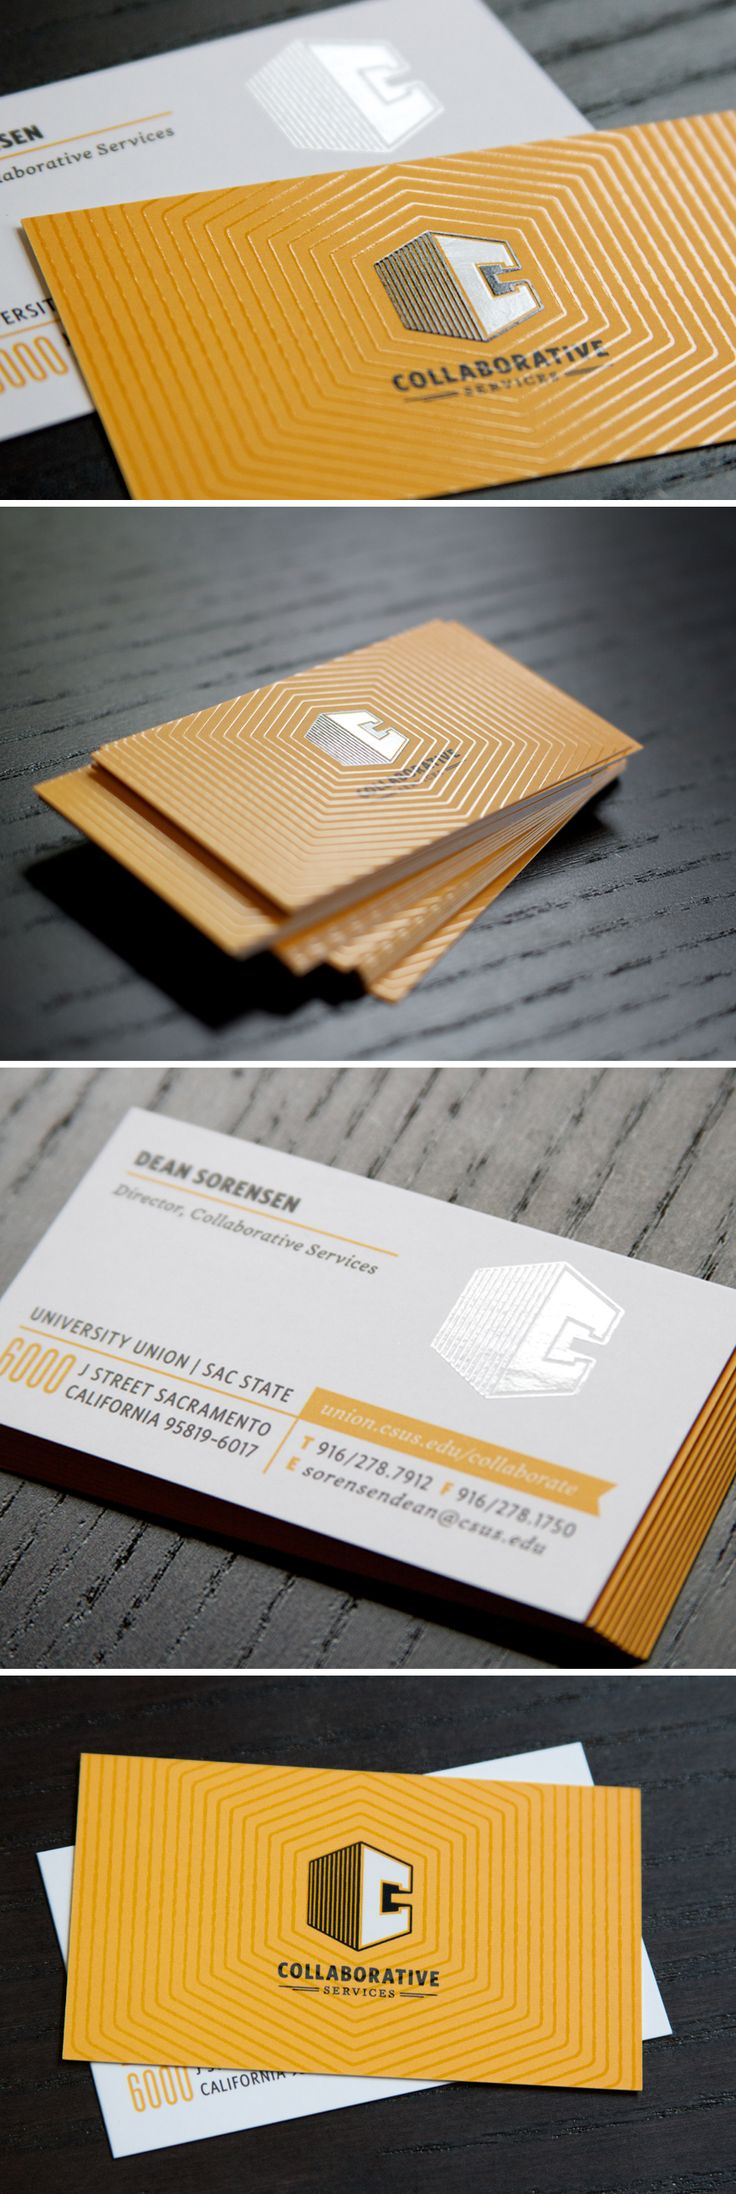 98 best Business card images on Pinterest | Ideas, Stationery and ...